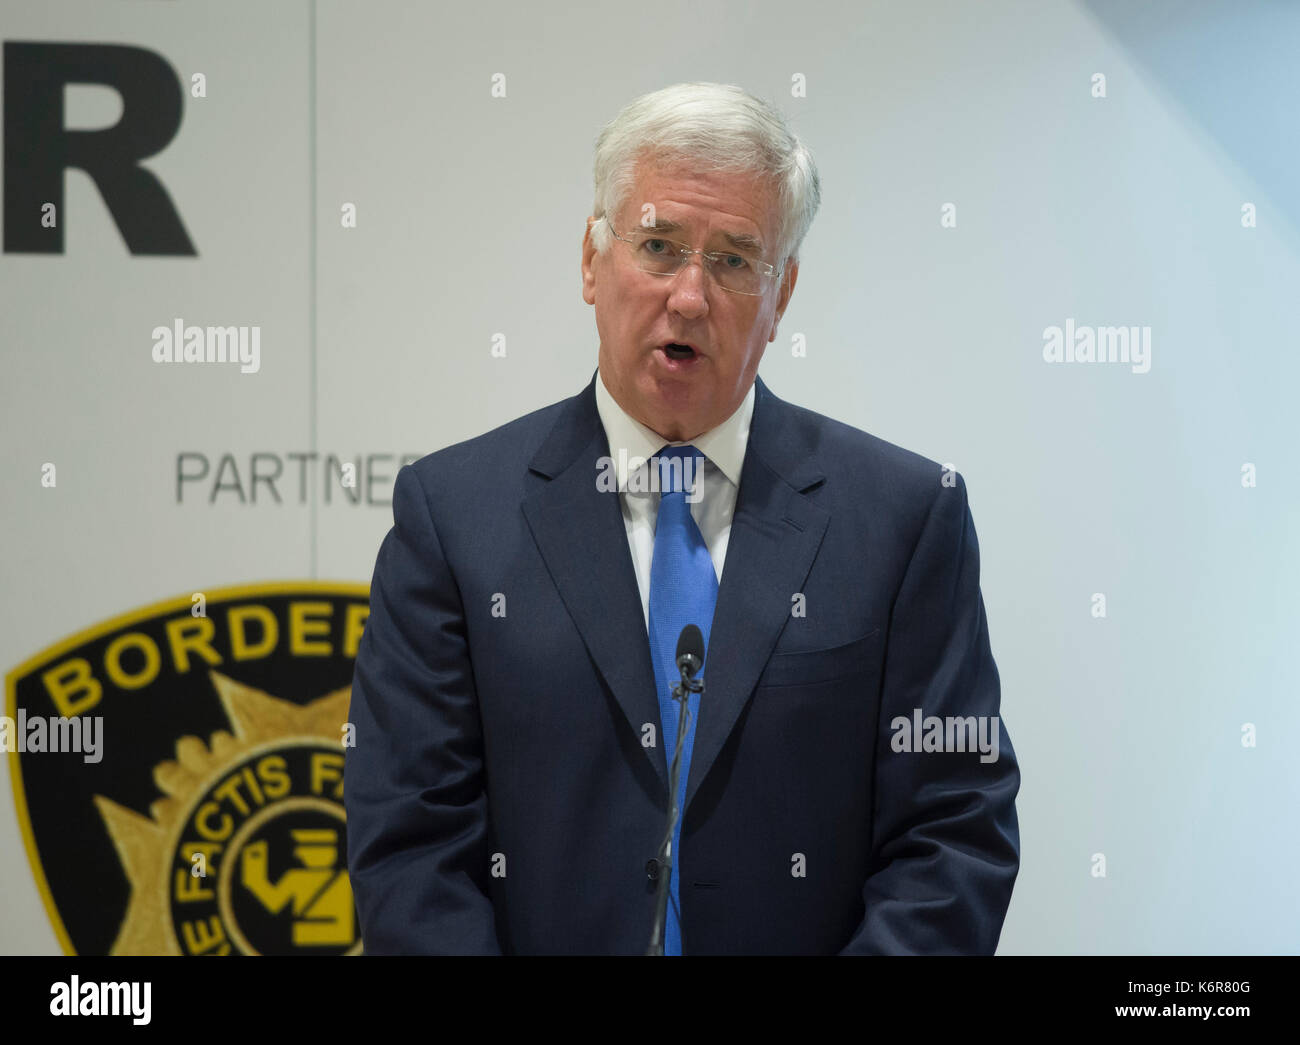 ExCel, London, UK. 13th Sep, 2017. Defence and Security Equipment International (DSEI), the worlds leading global defence and security event runs from 12-15 September 2017. Keynote speaker Secretary of State for Defence The Rt Hon Sir Michael Fallon MP addresses delegates on threats, cyber terrorism and defence spending budgets. In October 2017 Sir Michael Fallon resigned as Defence Secretary. Credit: Malcolm Park/Alamy Live News. - Stock Image